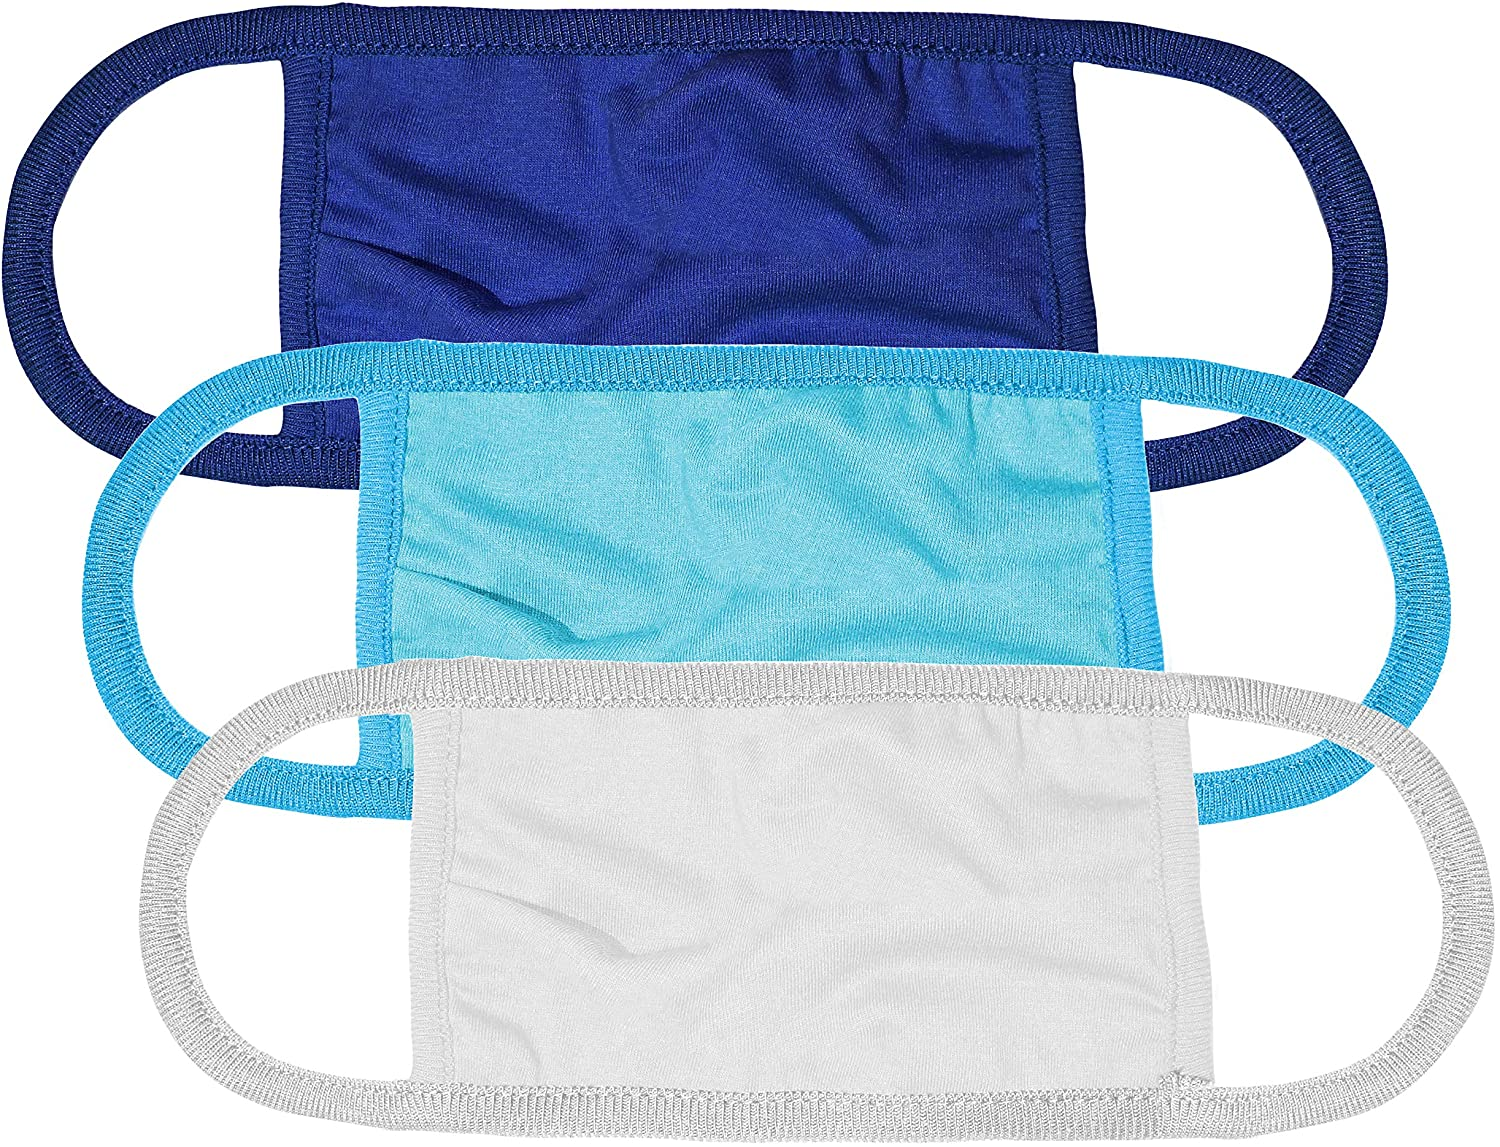 Kingsted Cloth Face Masks - Soft & Comfortable Fabric - Washable Cotton - 2 Ply